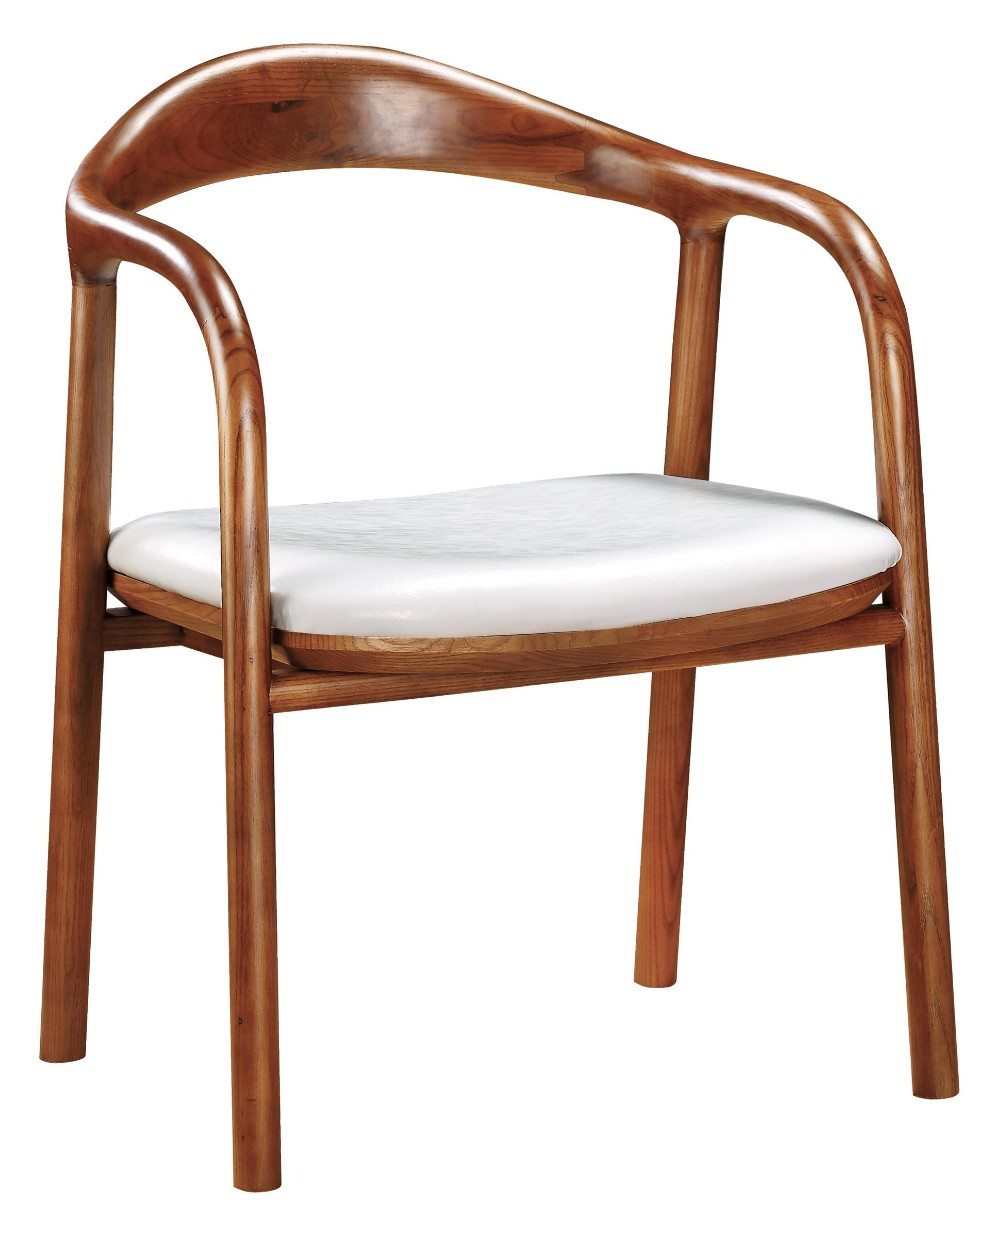 Types Of Living Room Chairs Types Of Antique Wooden Chairs Types Of Antique Wooden Chairs